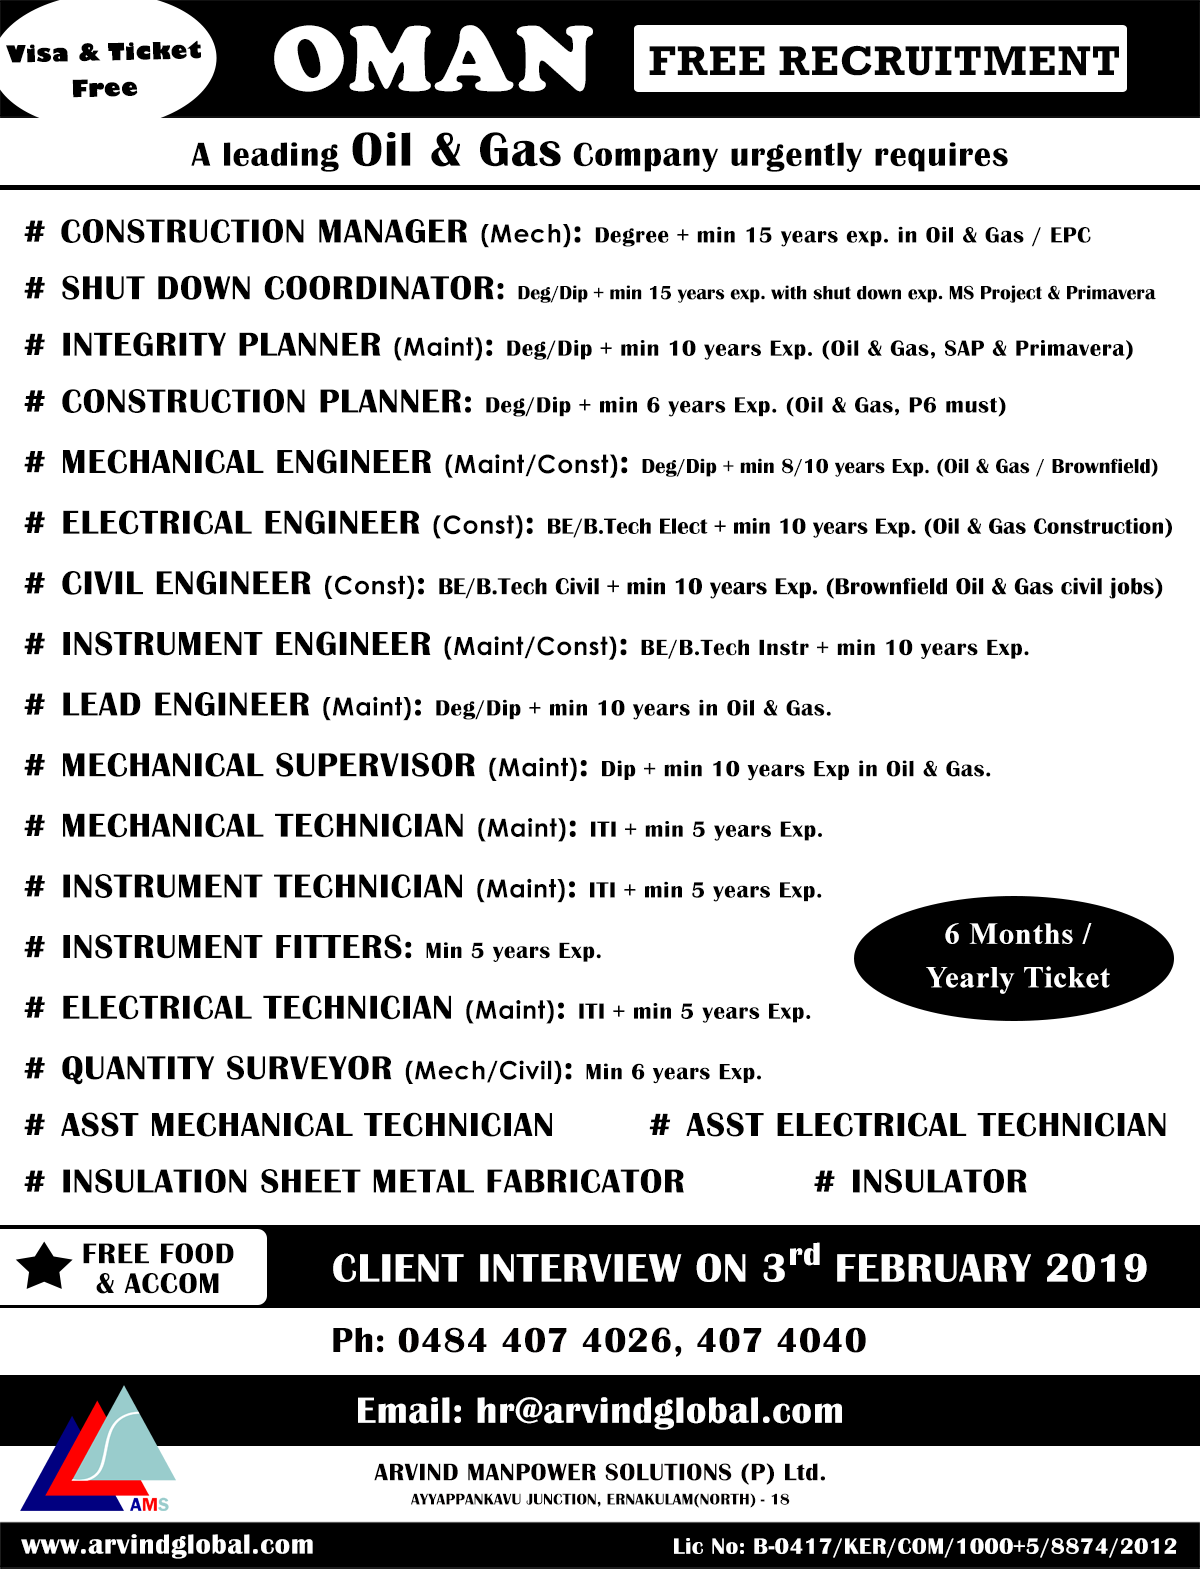 Moh Oman Vacancies